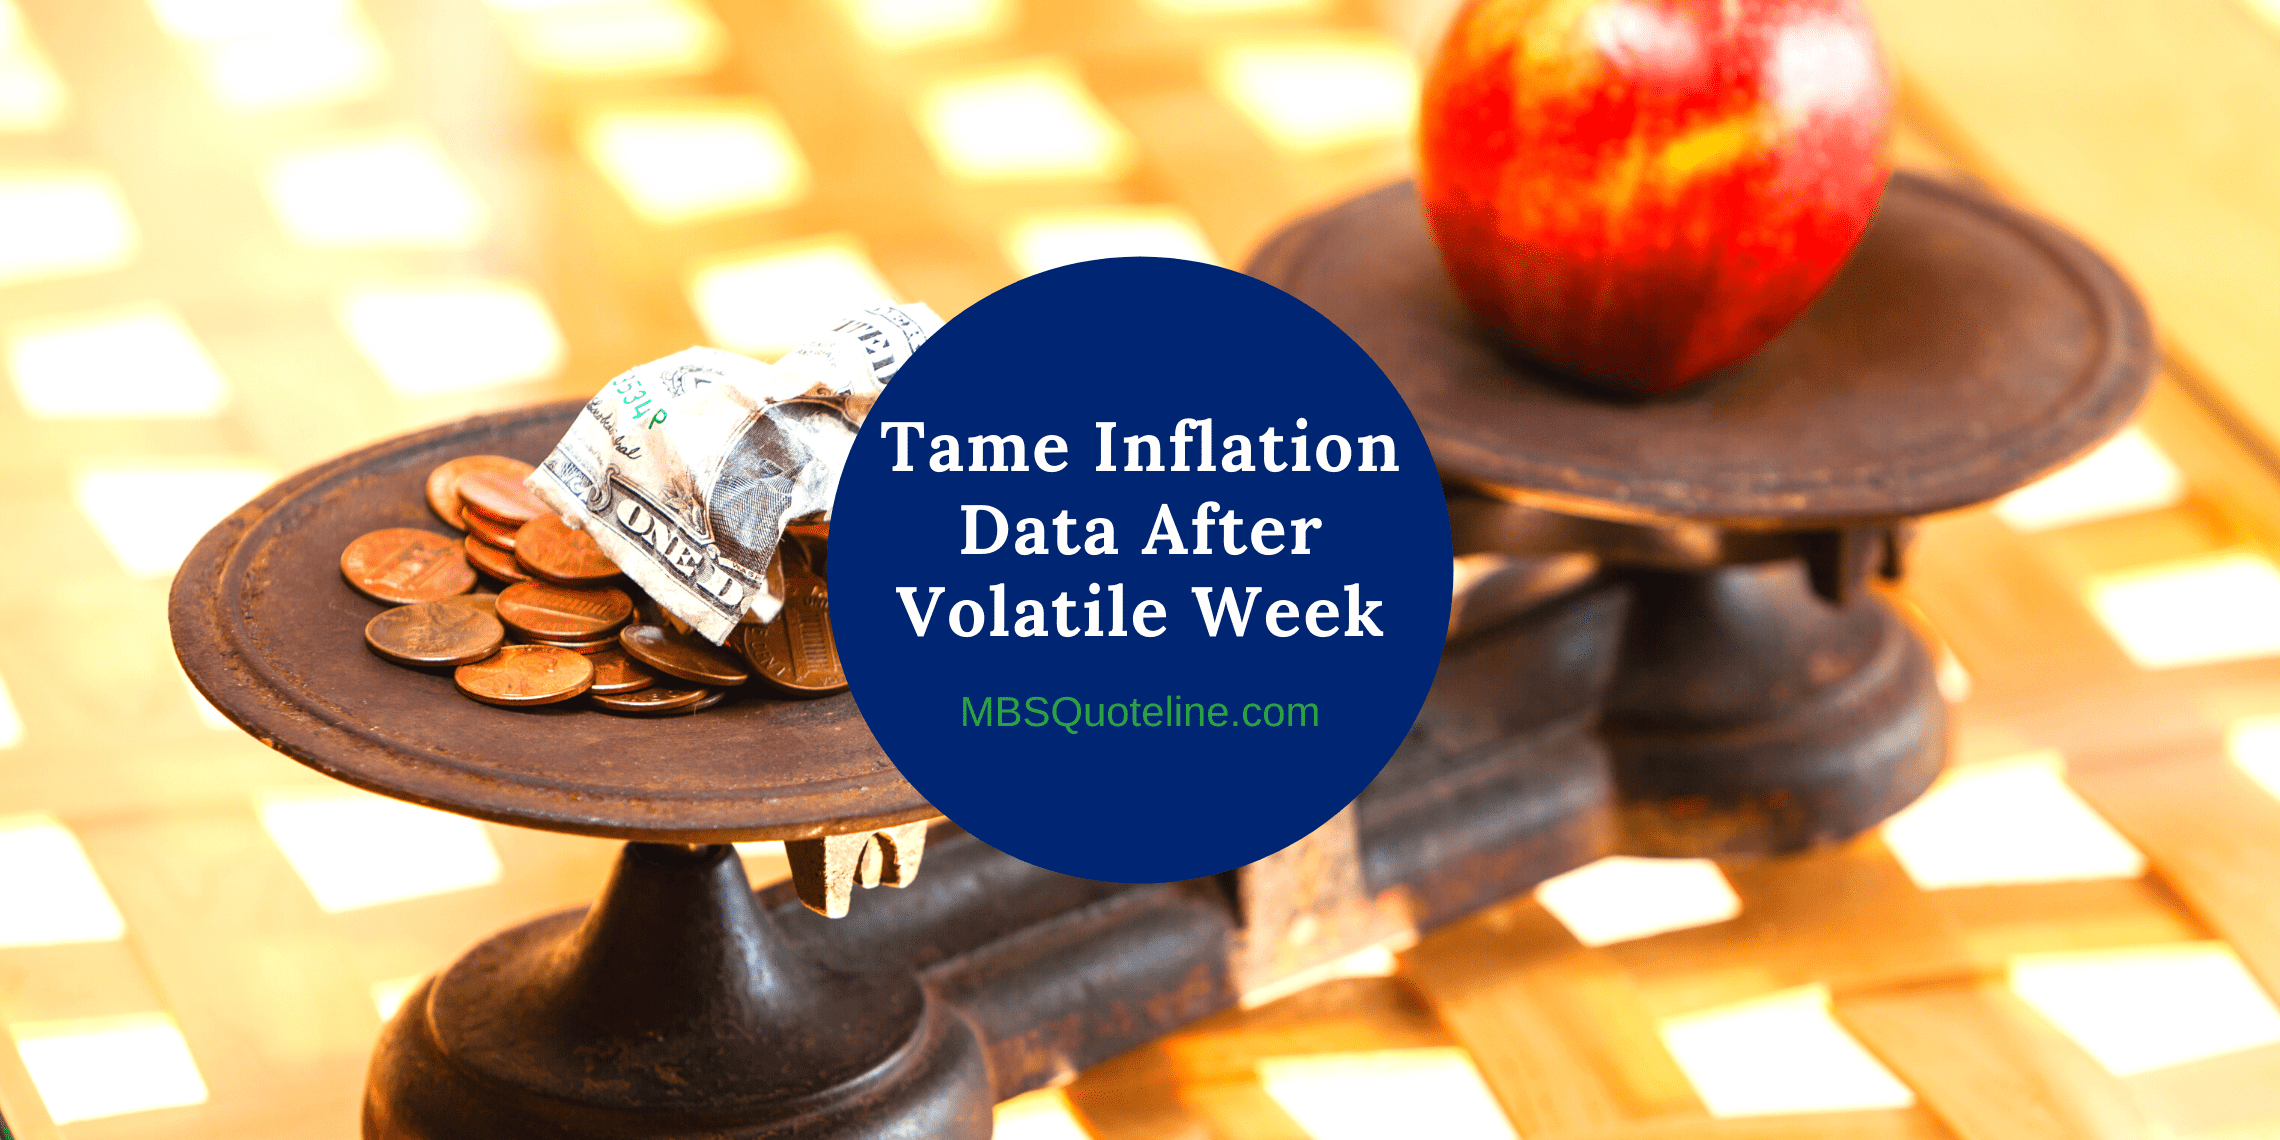 tame inflation data after volatile week mbsquoteline featured mortgage markets